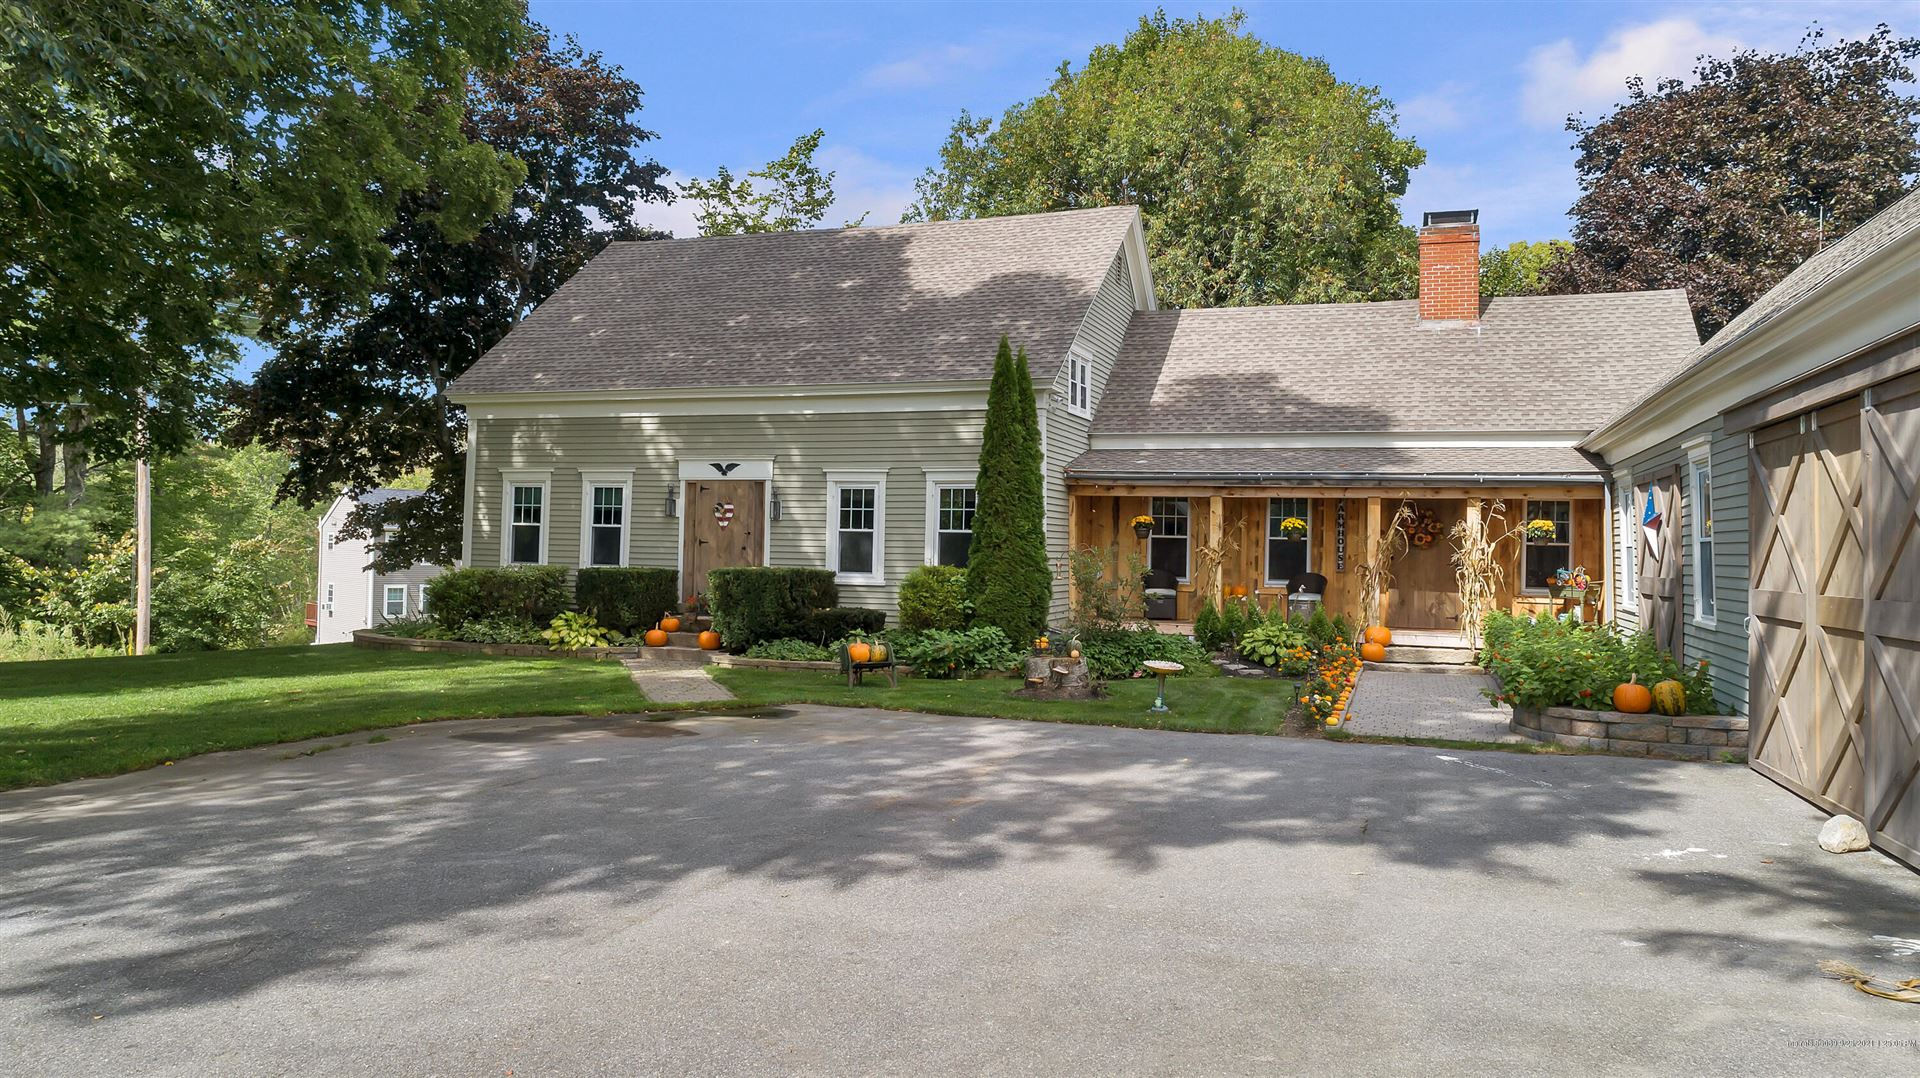 Photo of 697 Fort Hill Road, Gorham, ME 04038 (MLS # 1509583)